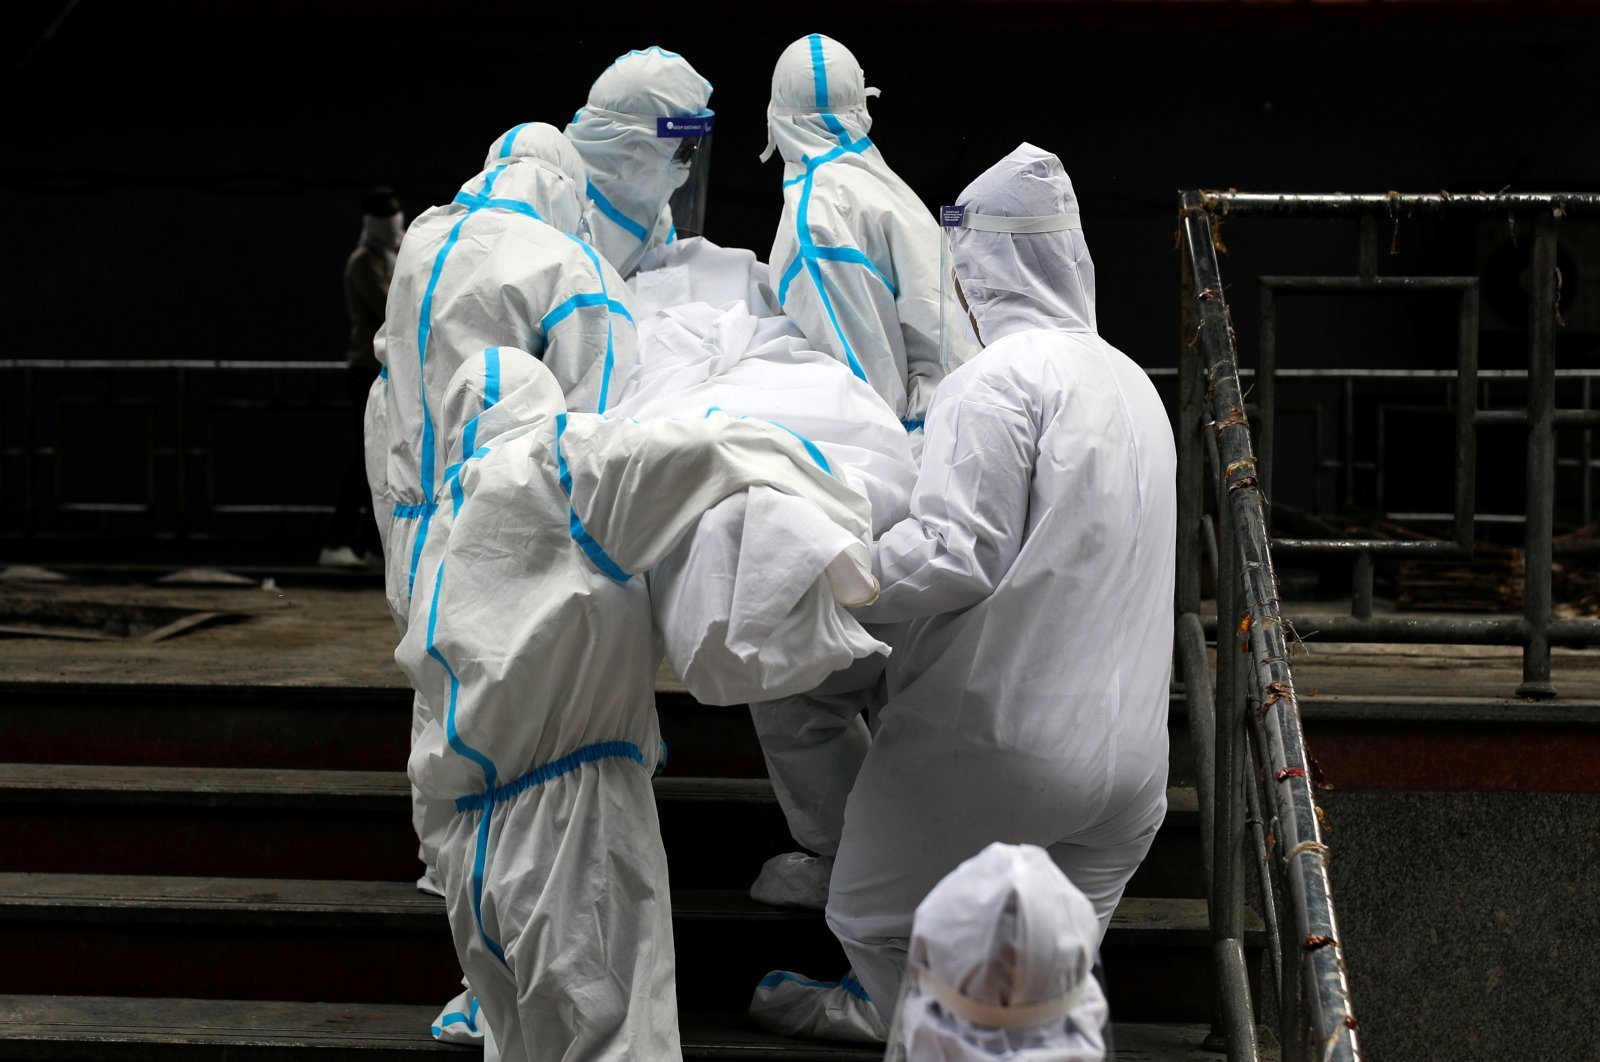 Health workers wearing personal protective equipment (PPE) carry the body of a man who died due to COVID-19, at a crematorium in New Delhi, India, Sept. 7, 2020. (Reuters Photo)